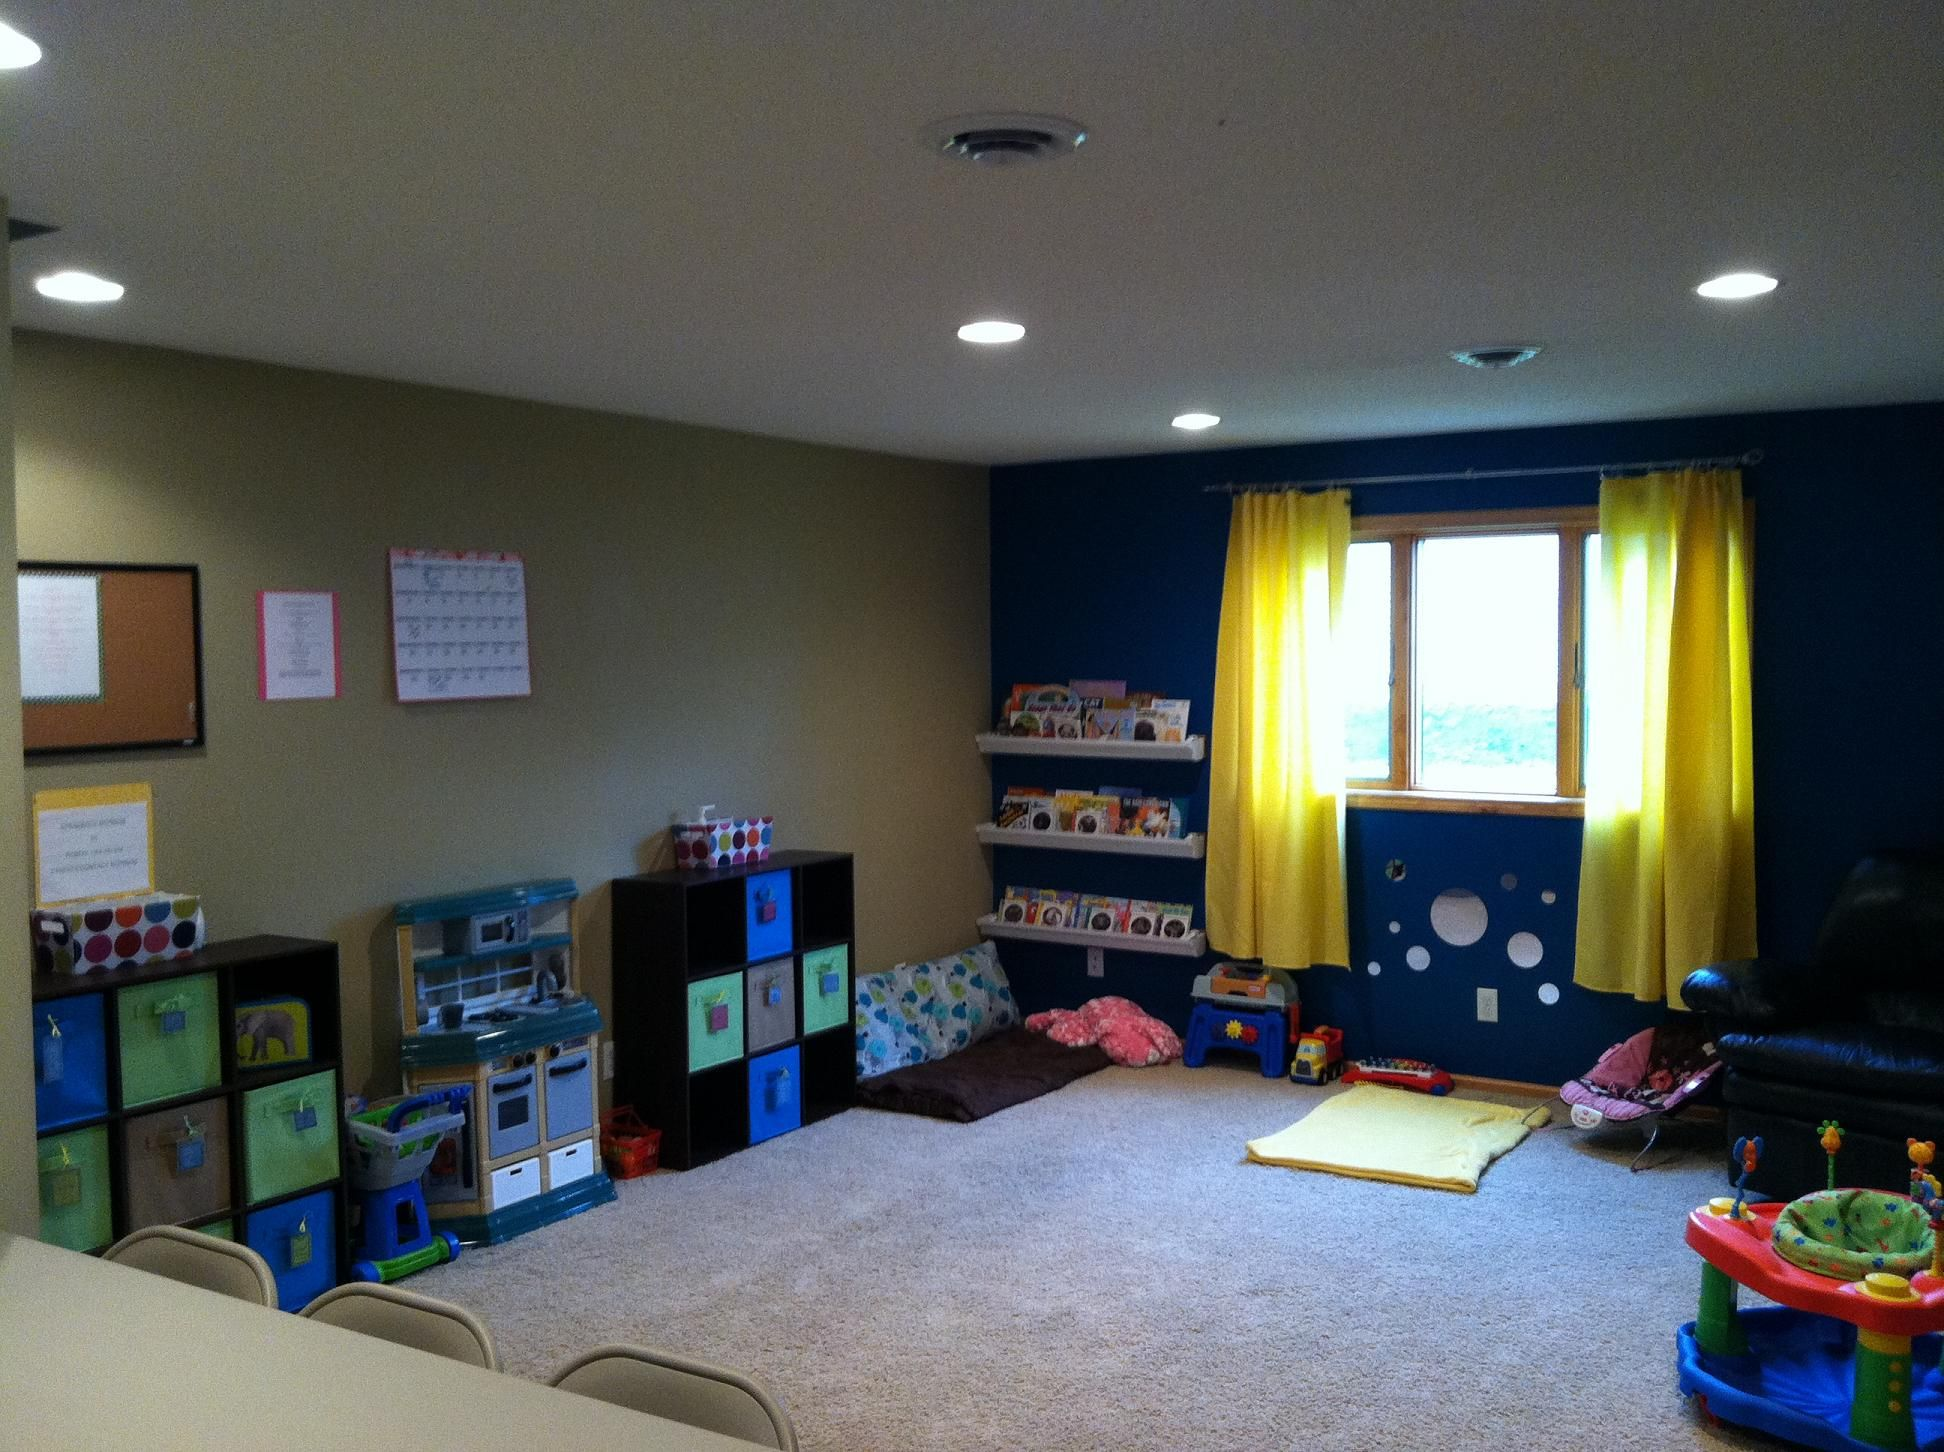 Home Daycare Design Ideas: Home Daycare, Home Daycare